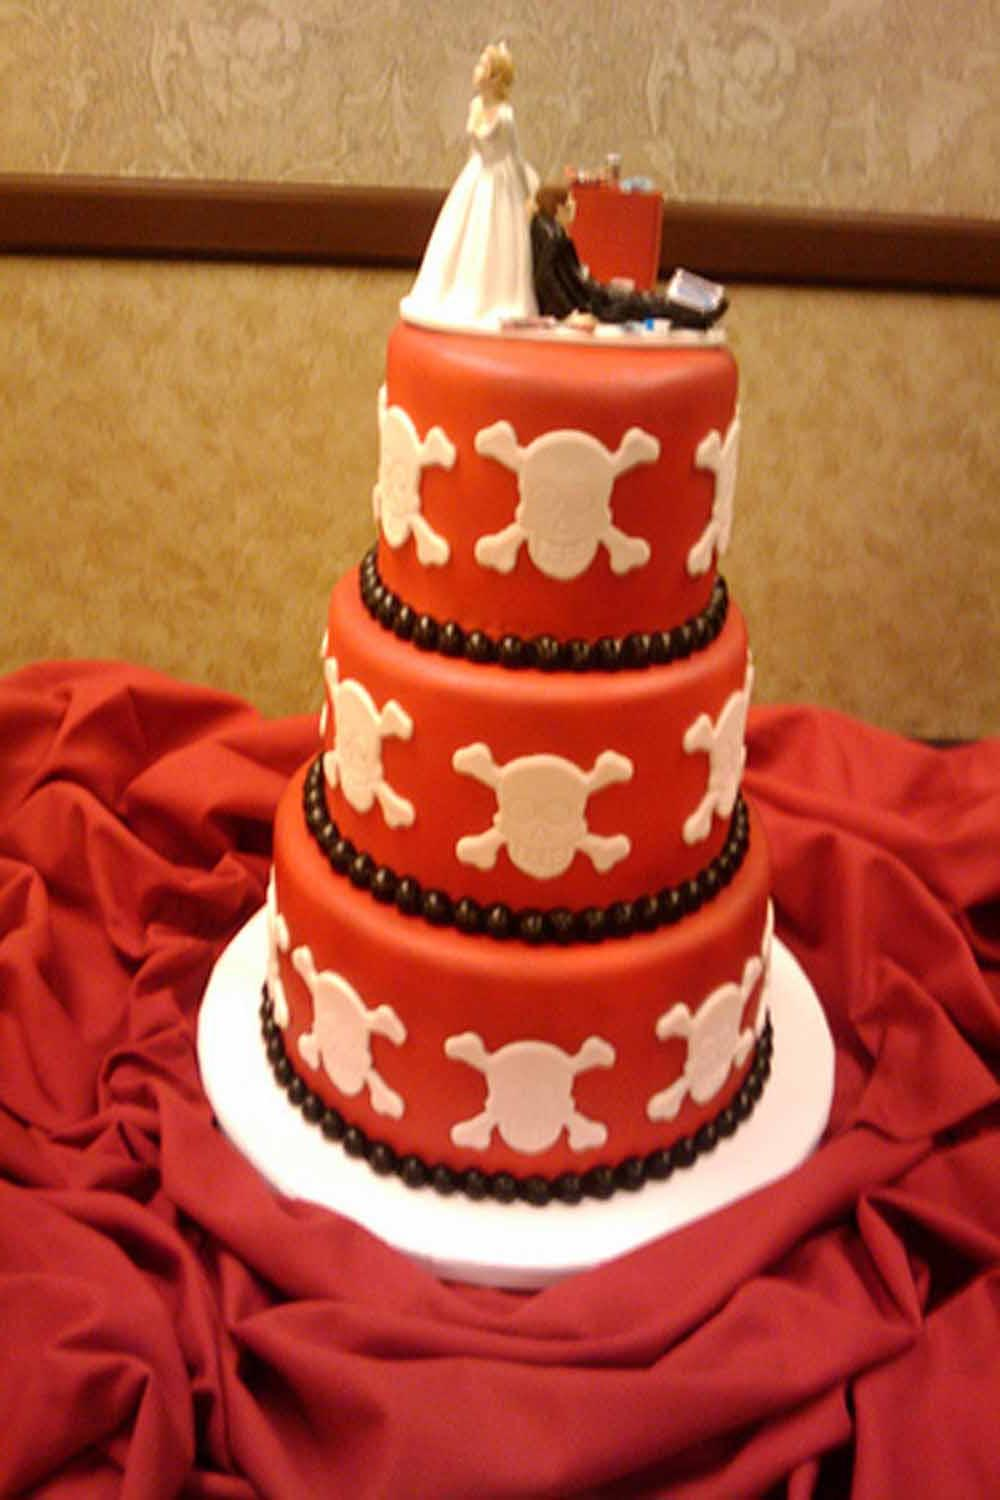 Wedding cakes designs 2011